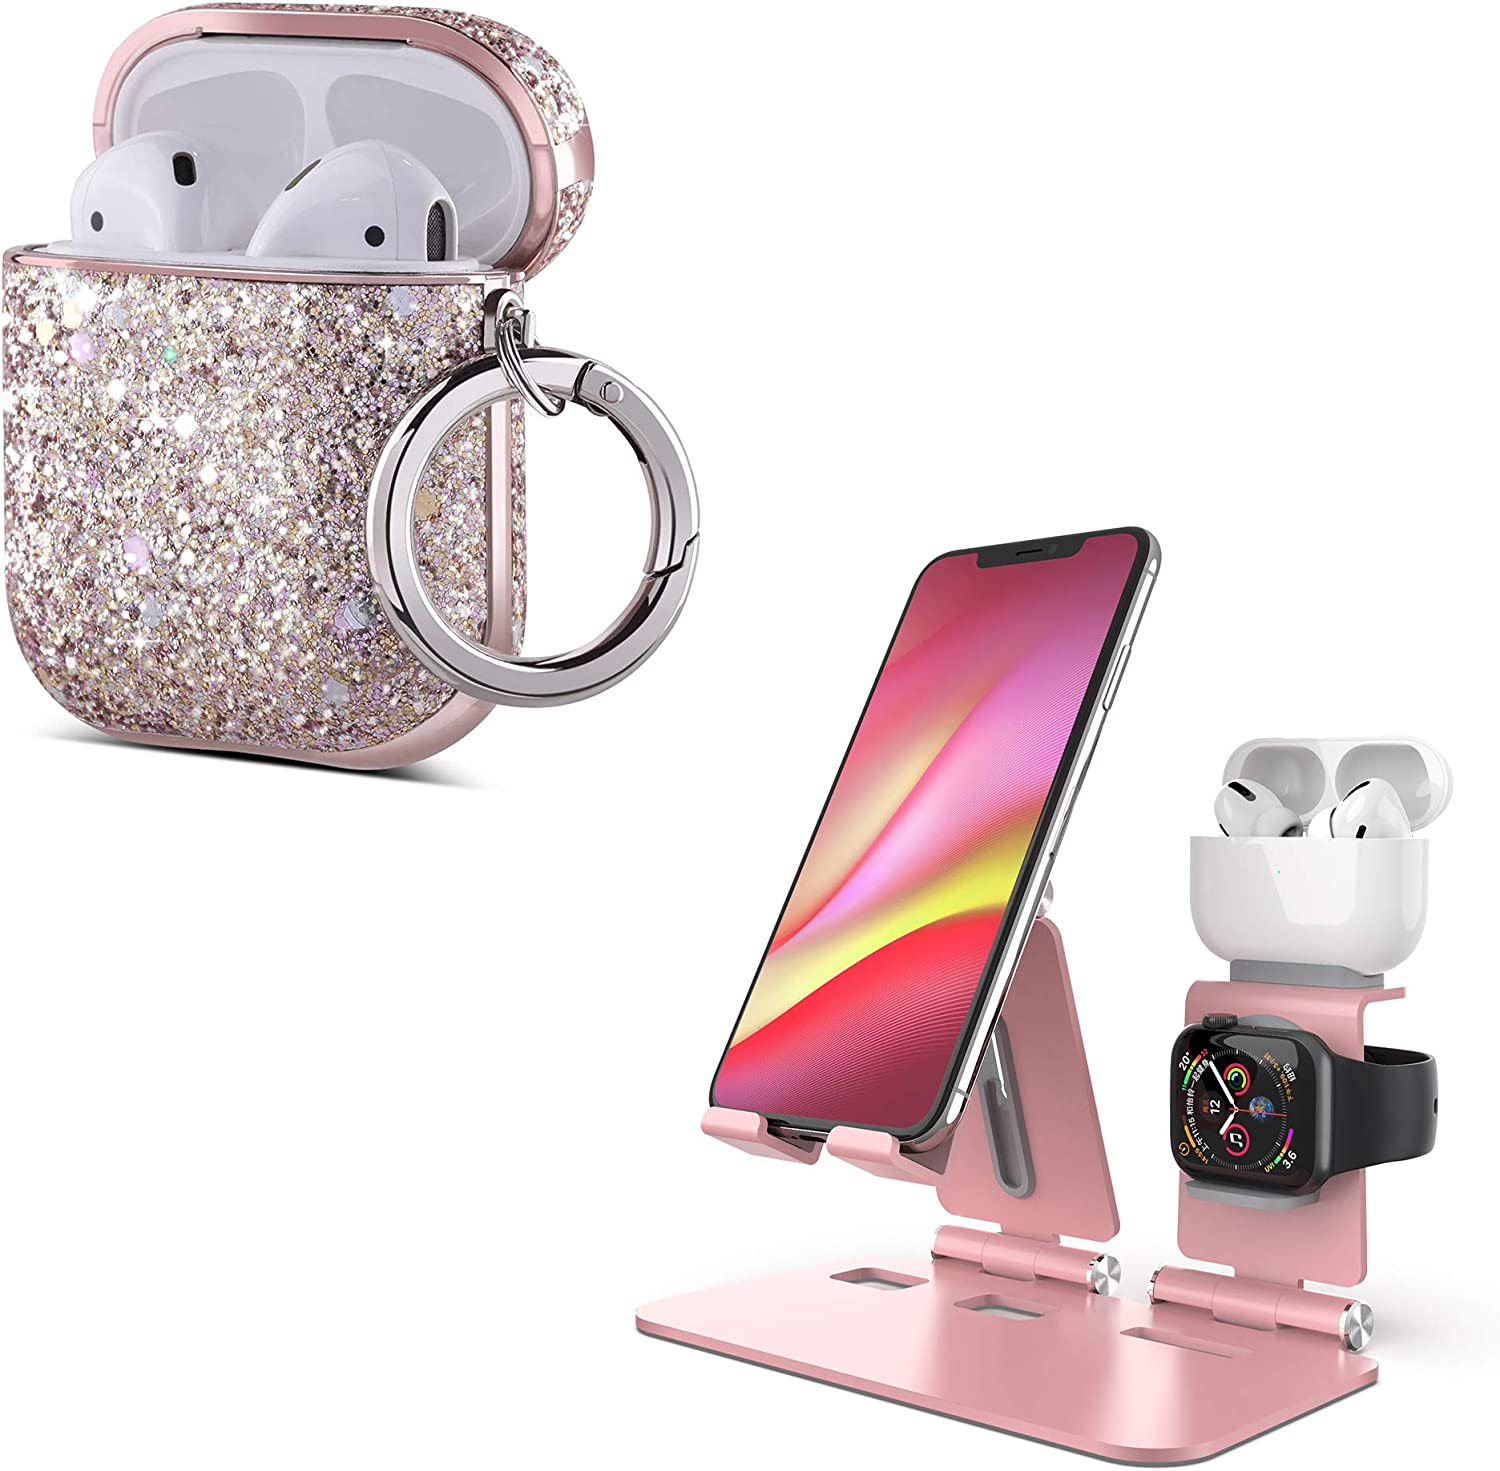 ULAK AirPods Cases Luxury Pink Glitter Leather & Foldable Phone Stand Rose Gold for iwatch Series, AirPods Pro, iPhone 12 Pro Max XR SE Mini, Galaxy S20+ S20 S10+ S10 iPad Mini